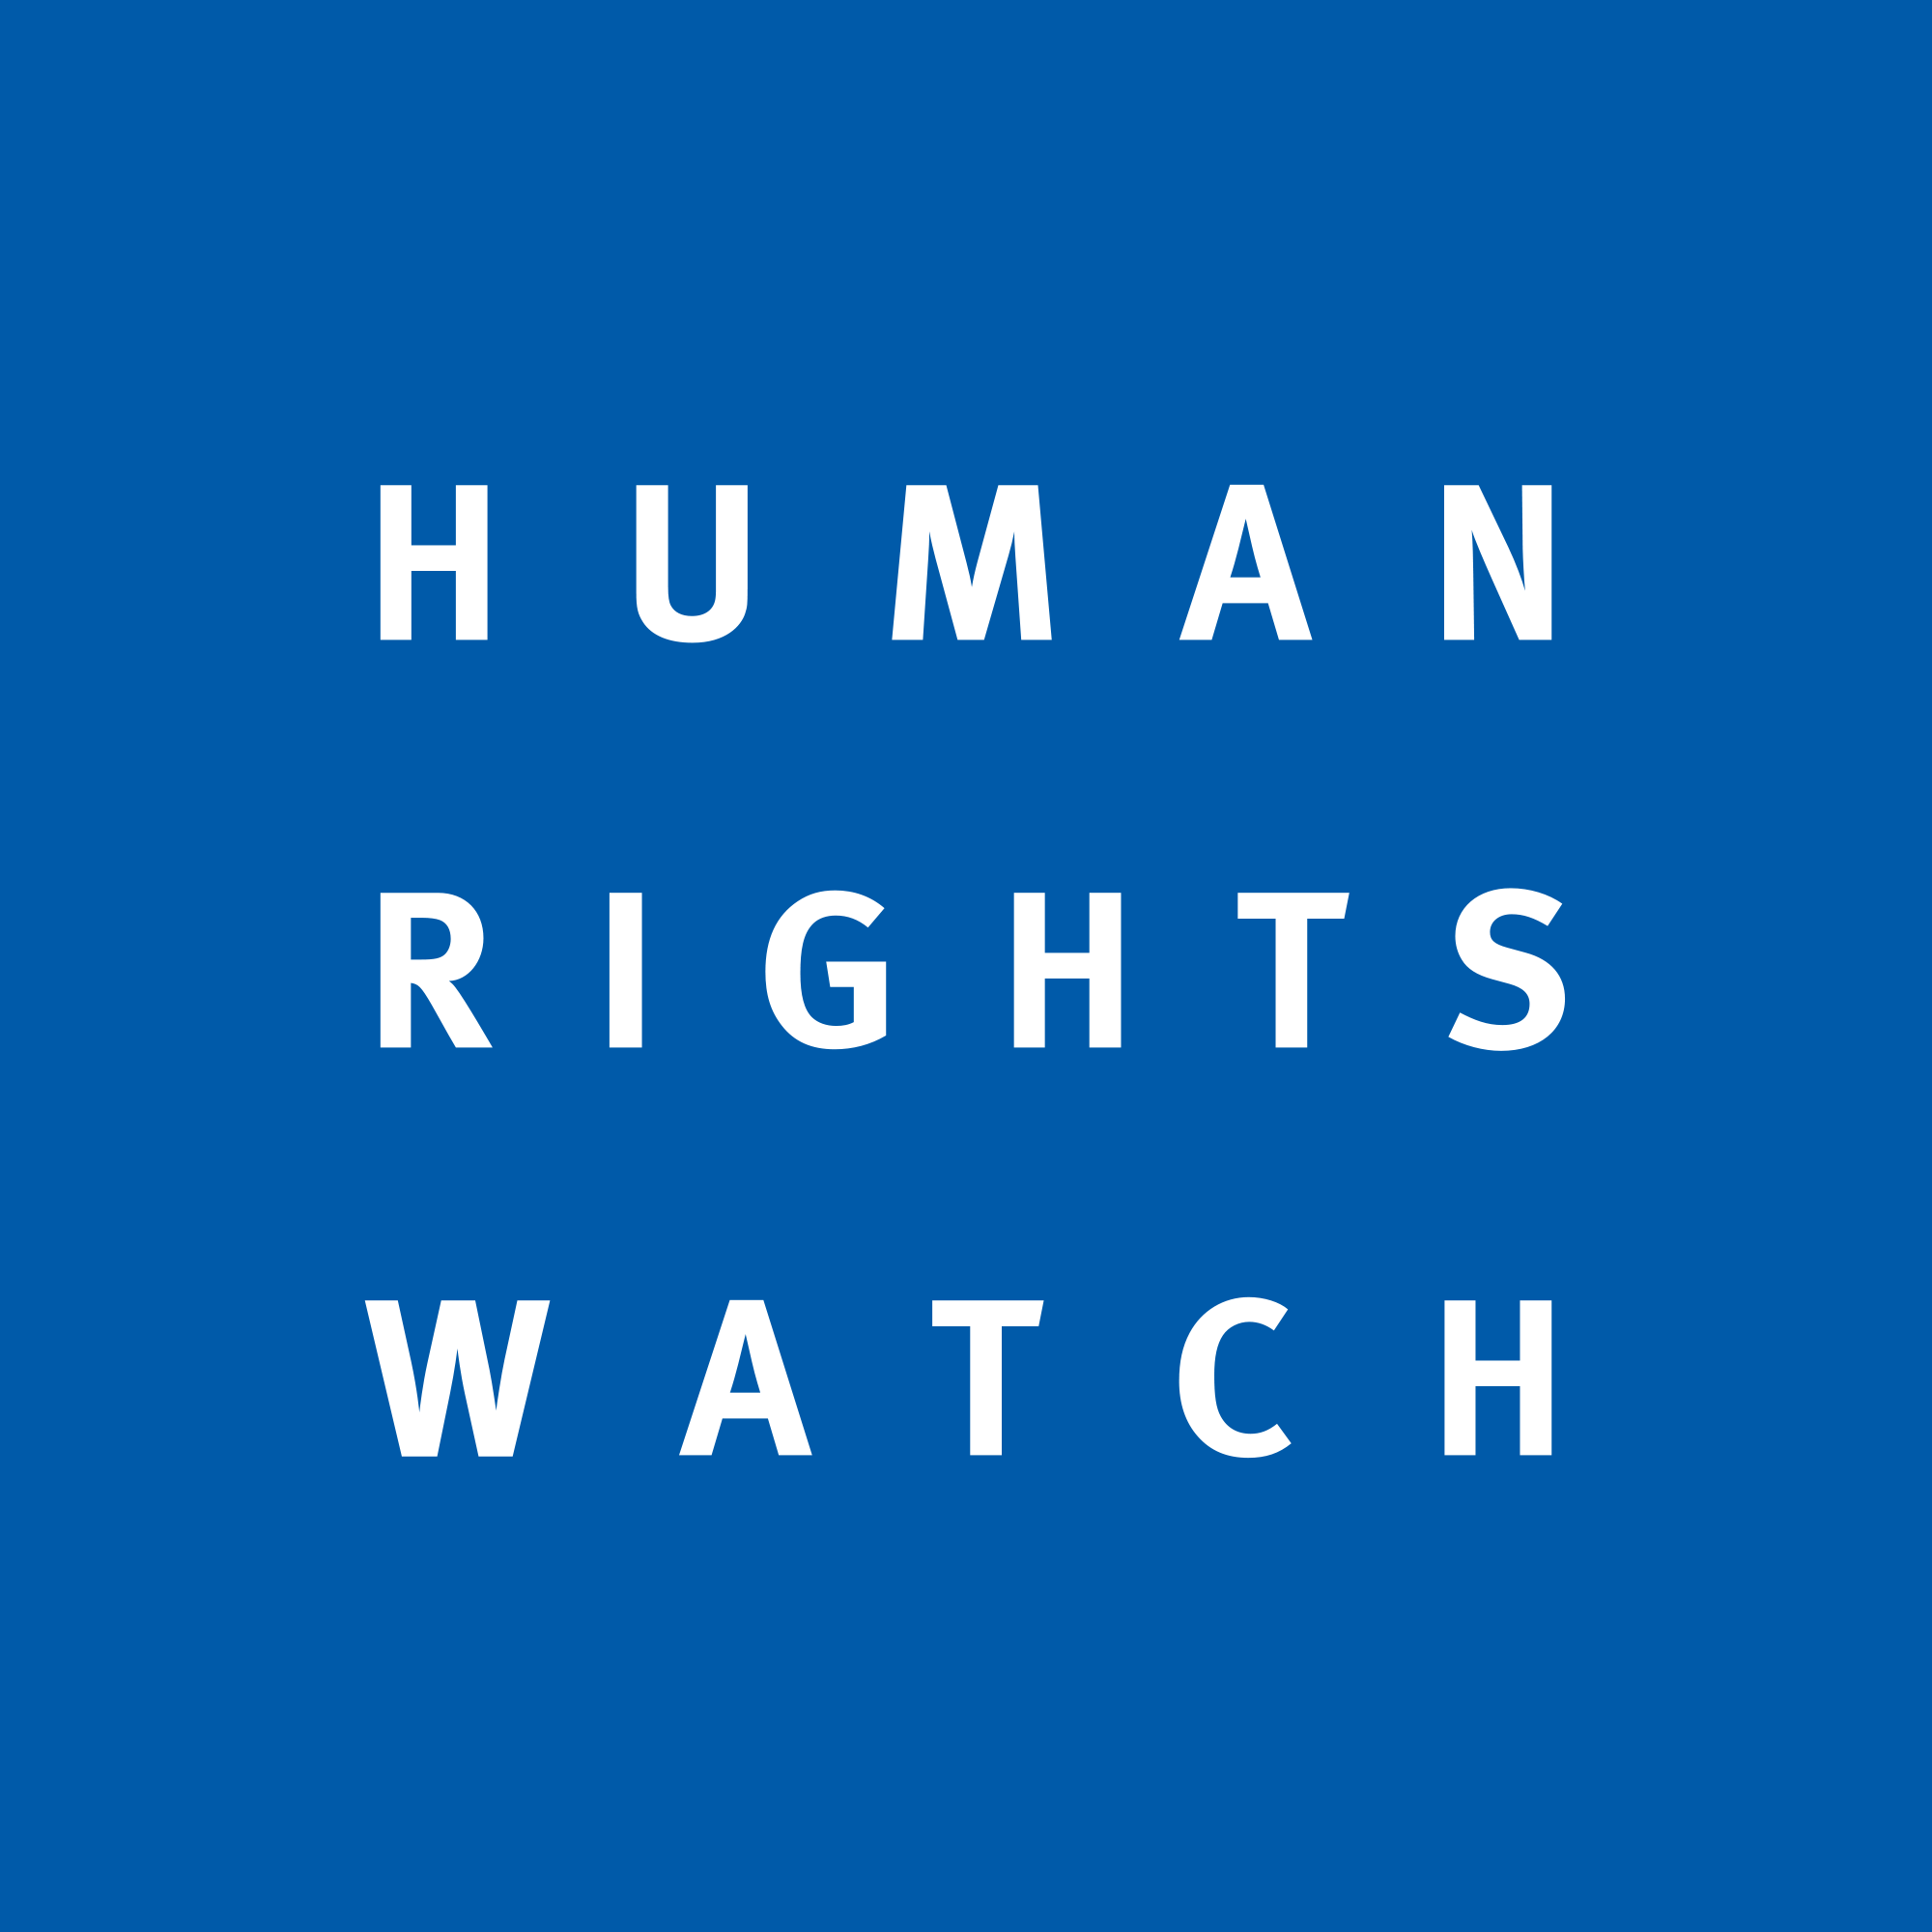 Human Rights Watch(HRW) logo